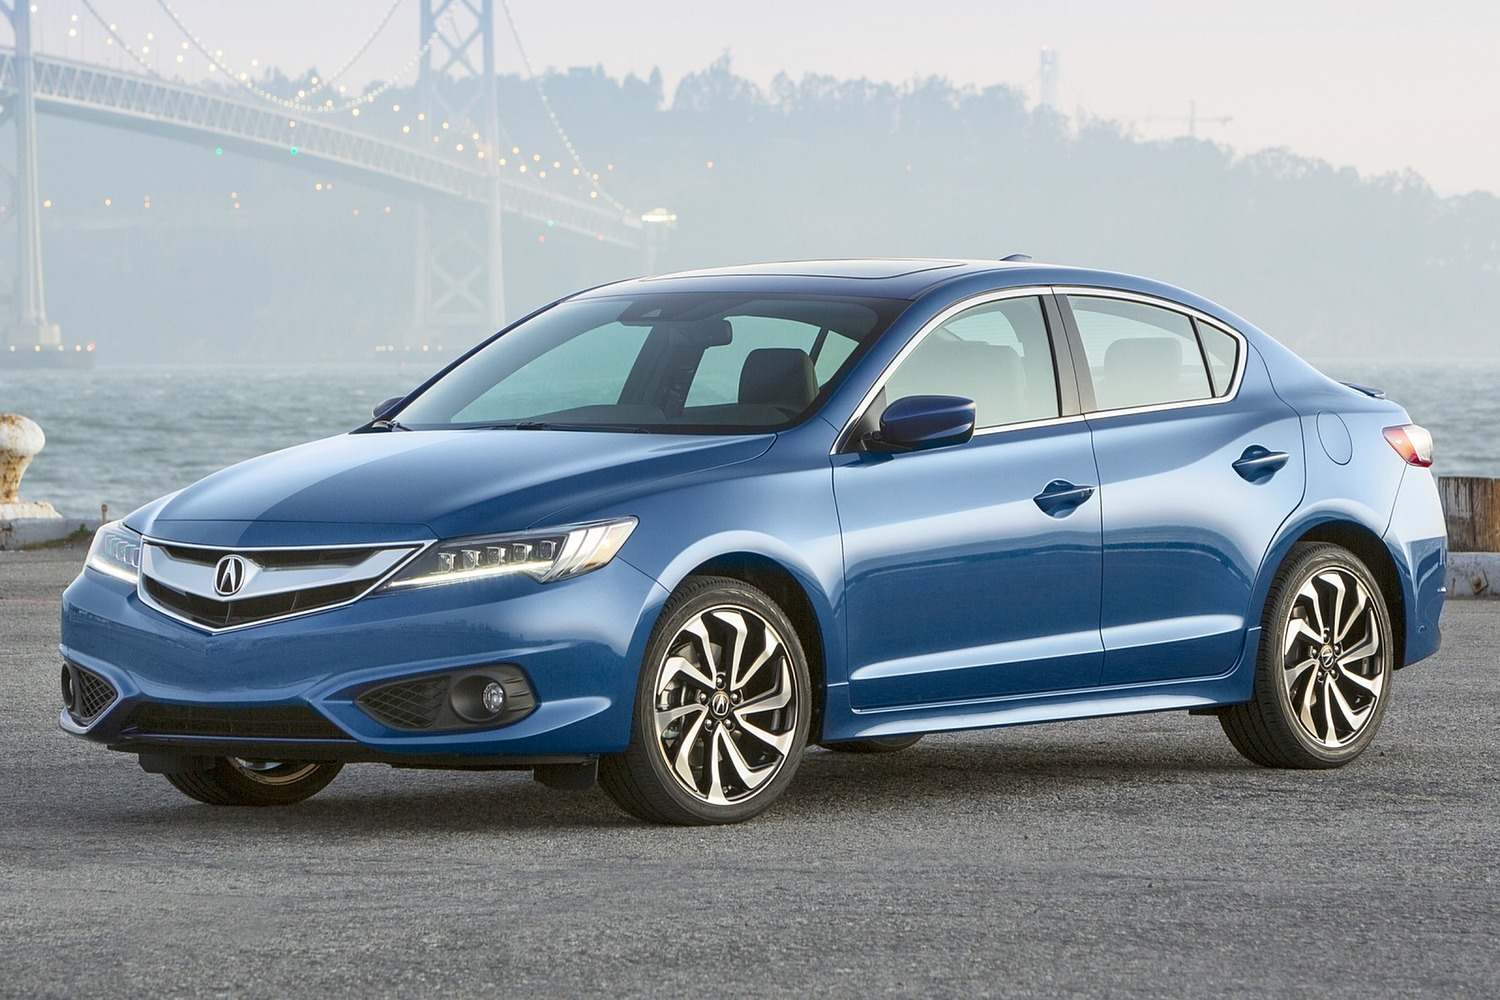 Acura ILX Technology Plus and A-SPEC Packages Sedan Exterior (2016 model year shown)